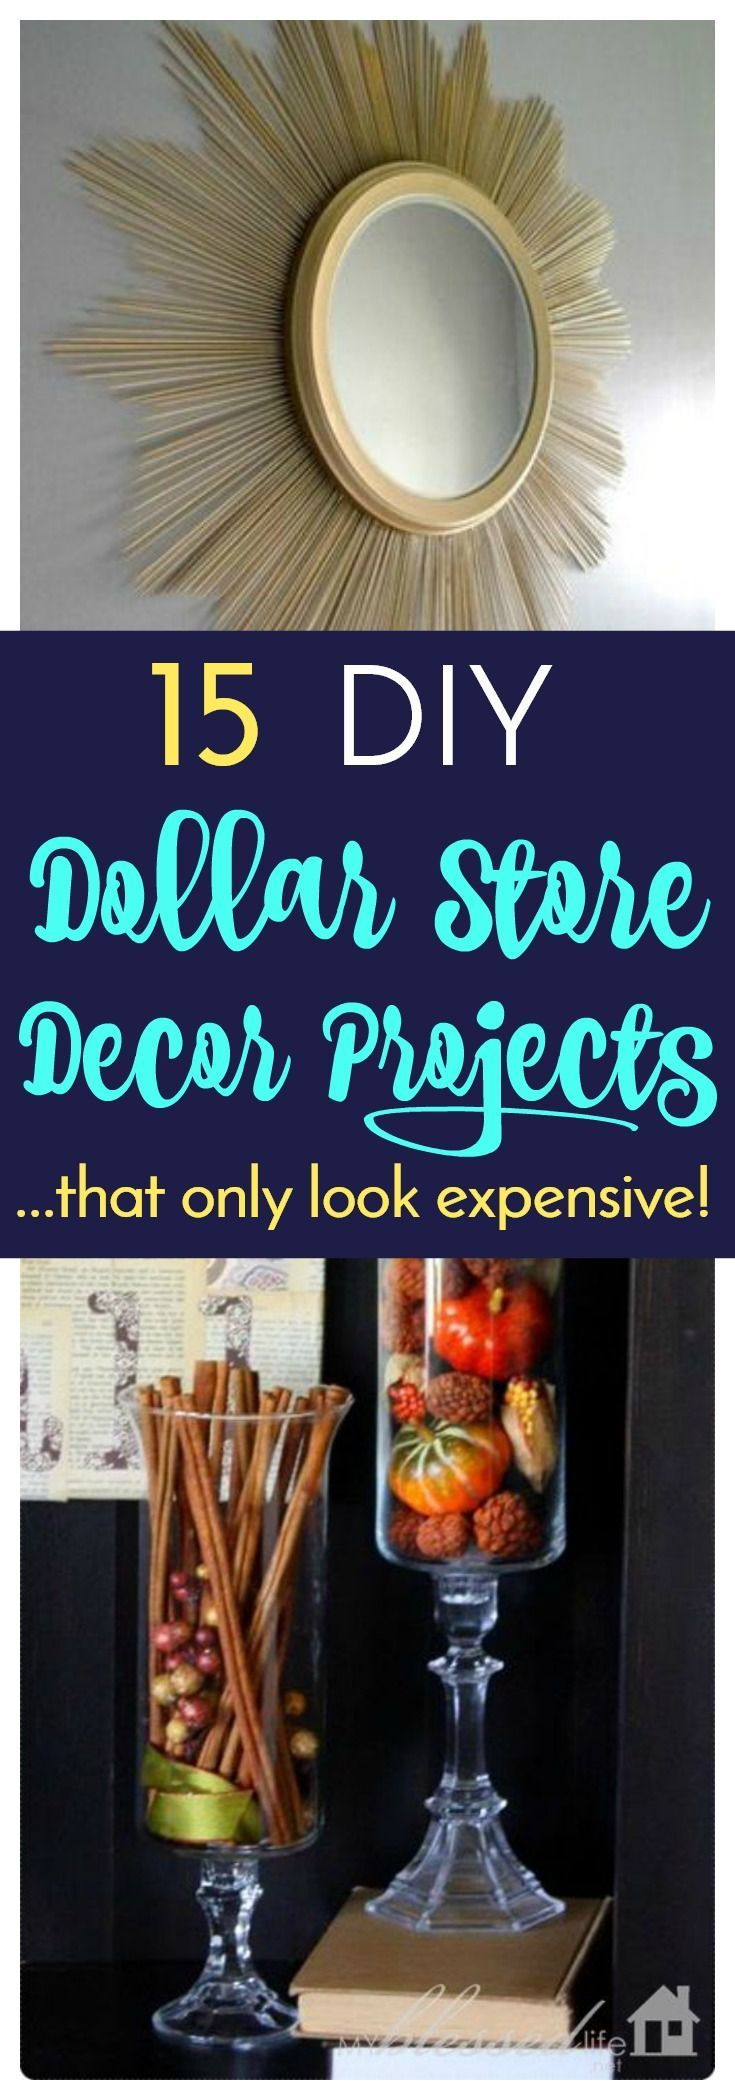 15 DIY Dollar Store Decor Projects That Only Look Expensive #diy #dollarstore